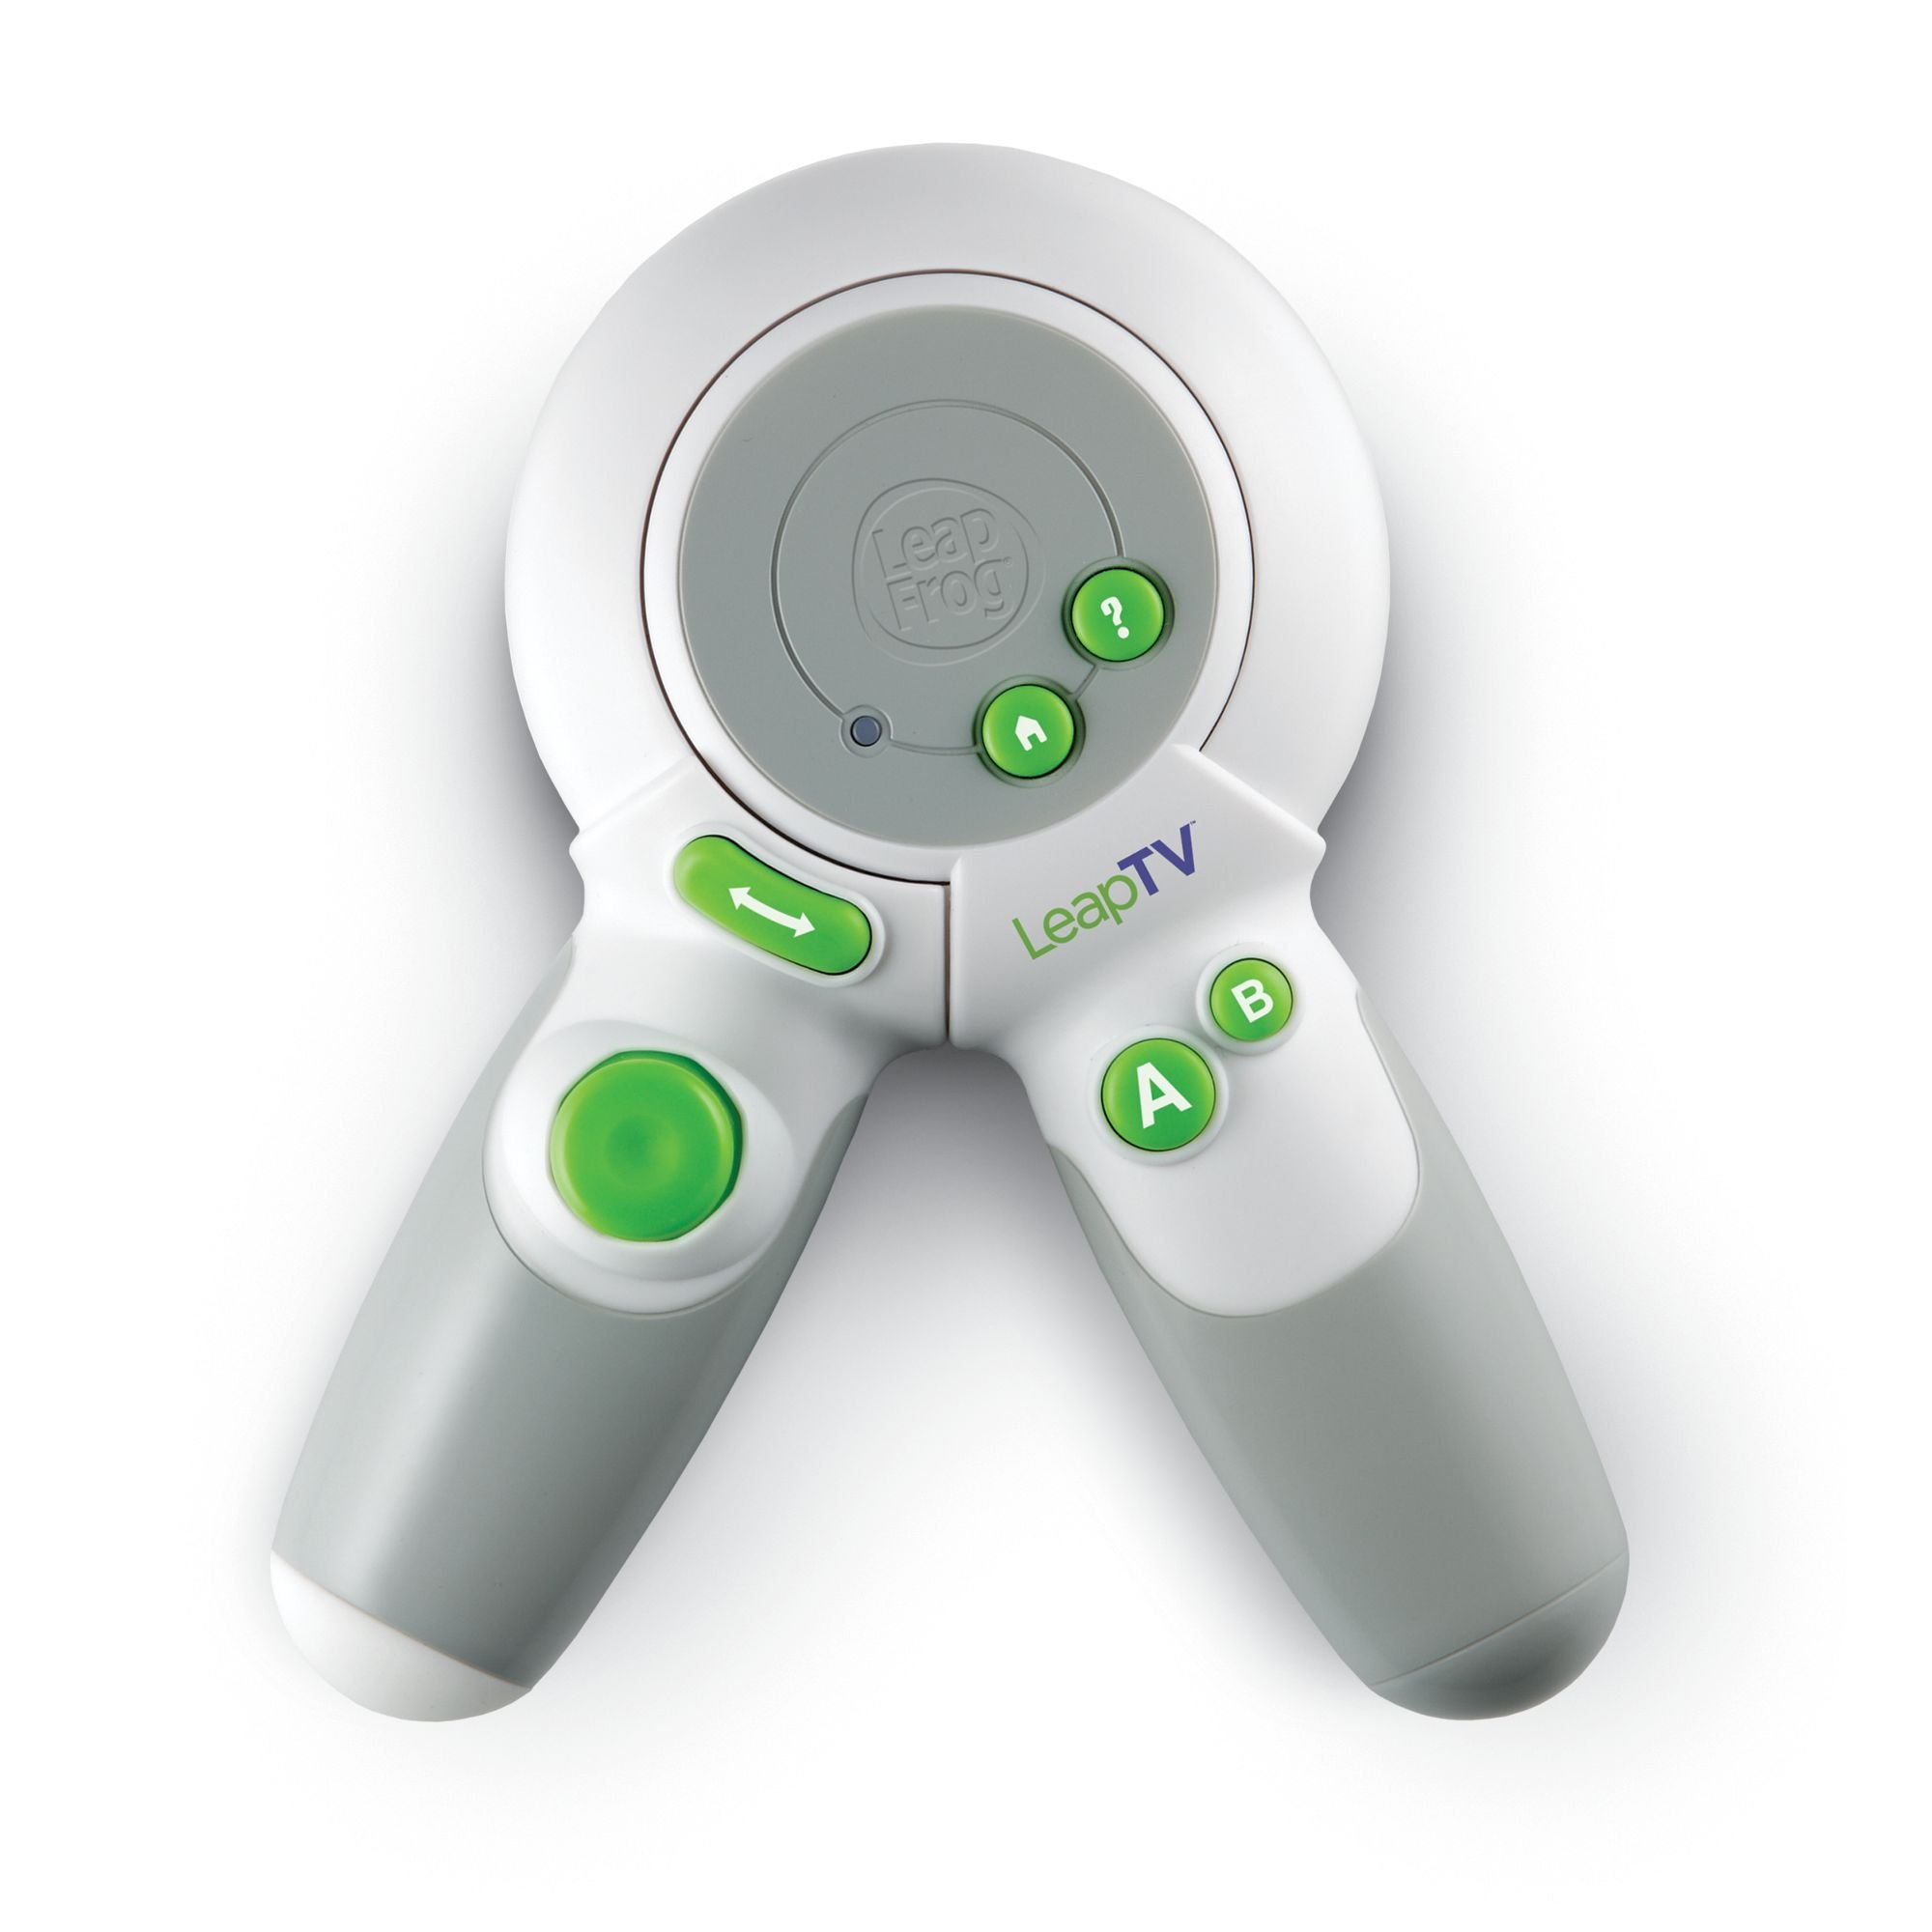 LeapFrog LeapTV Educational Gaming System(Discontinued by manufacturer) by LeapFrog (Image #15)